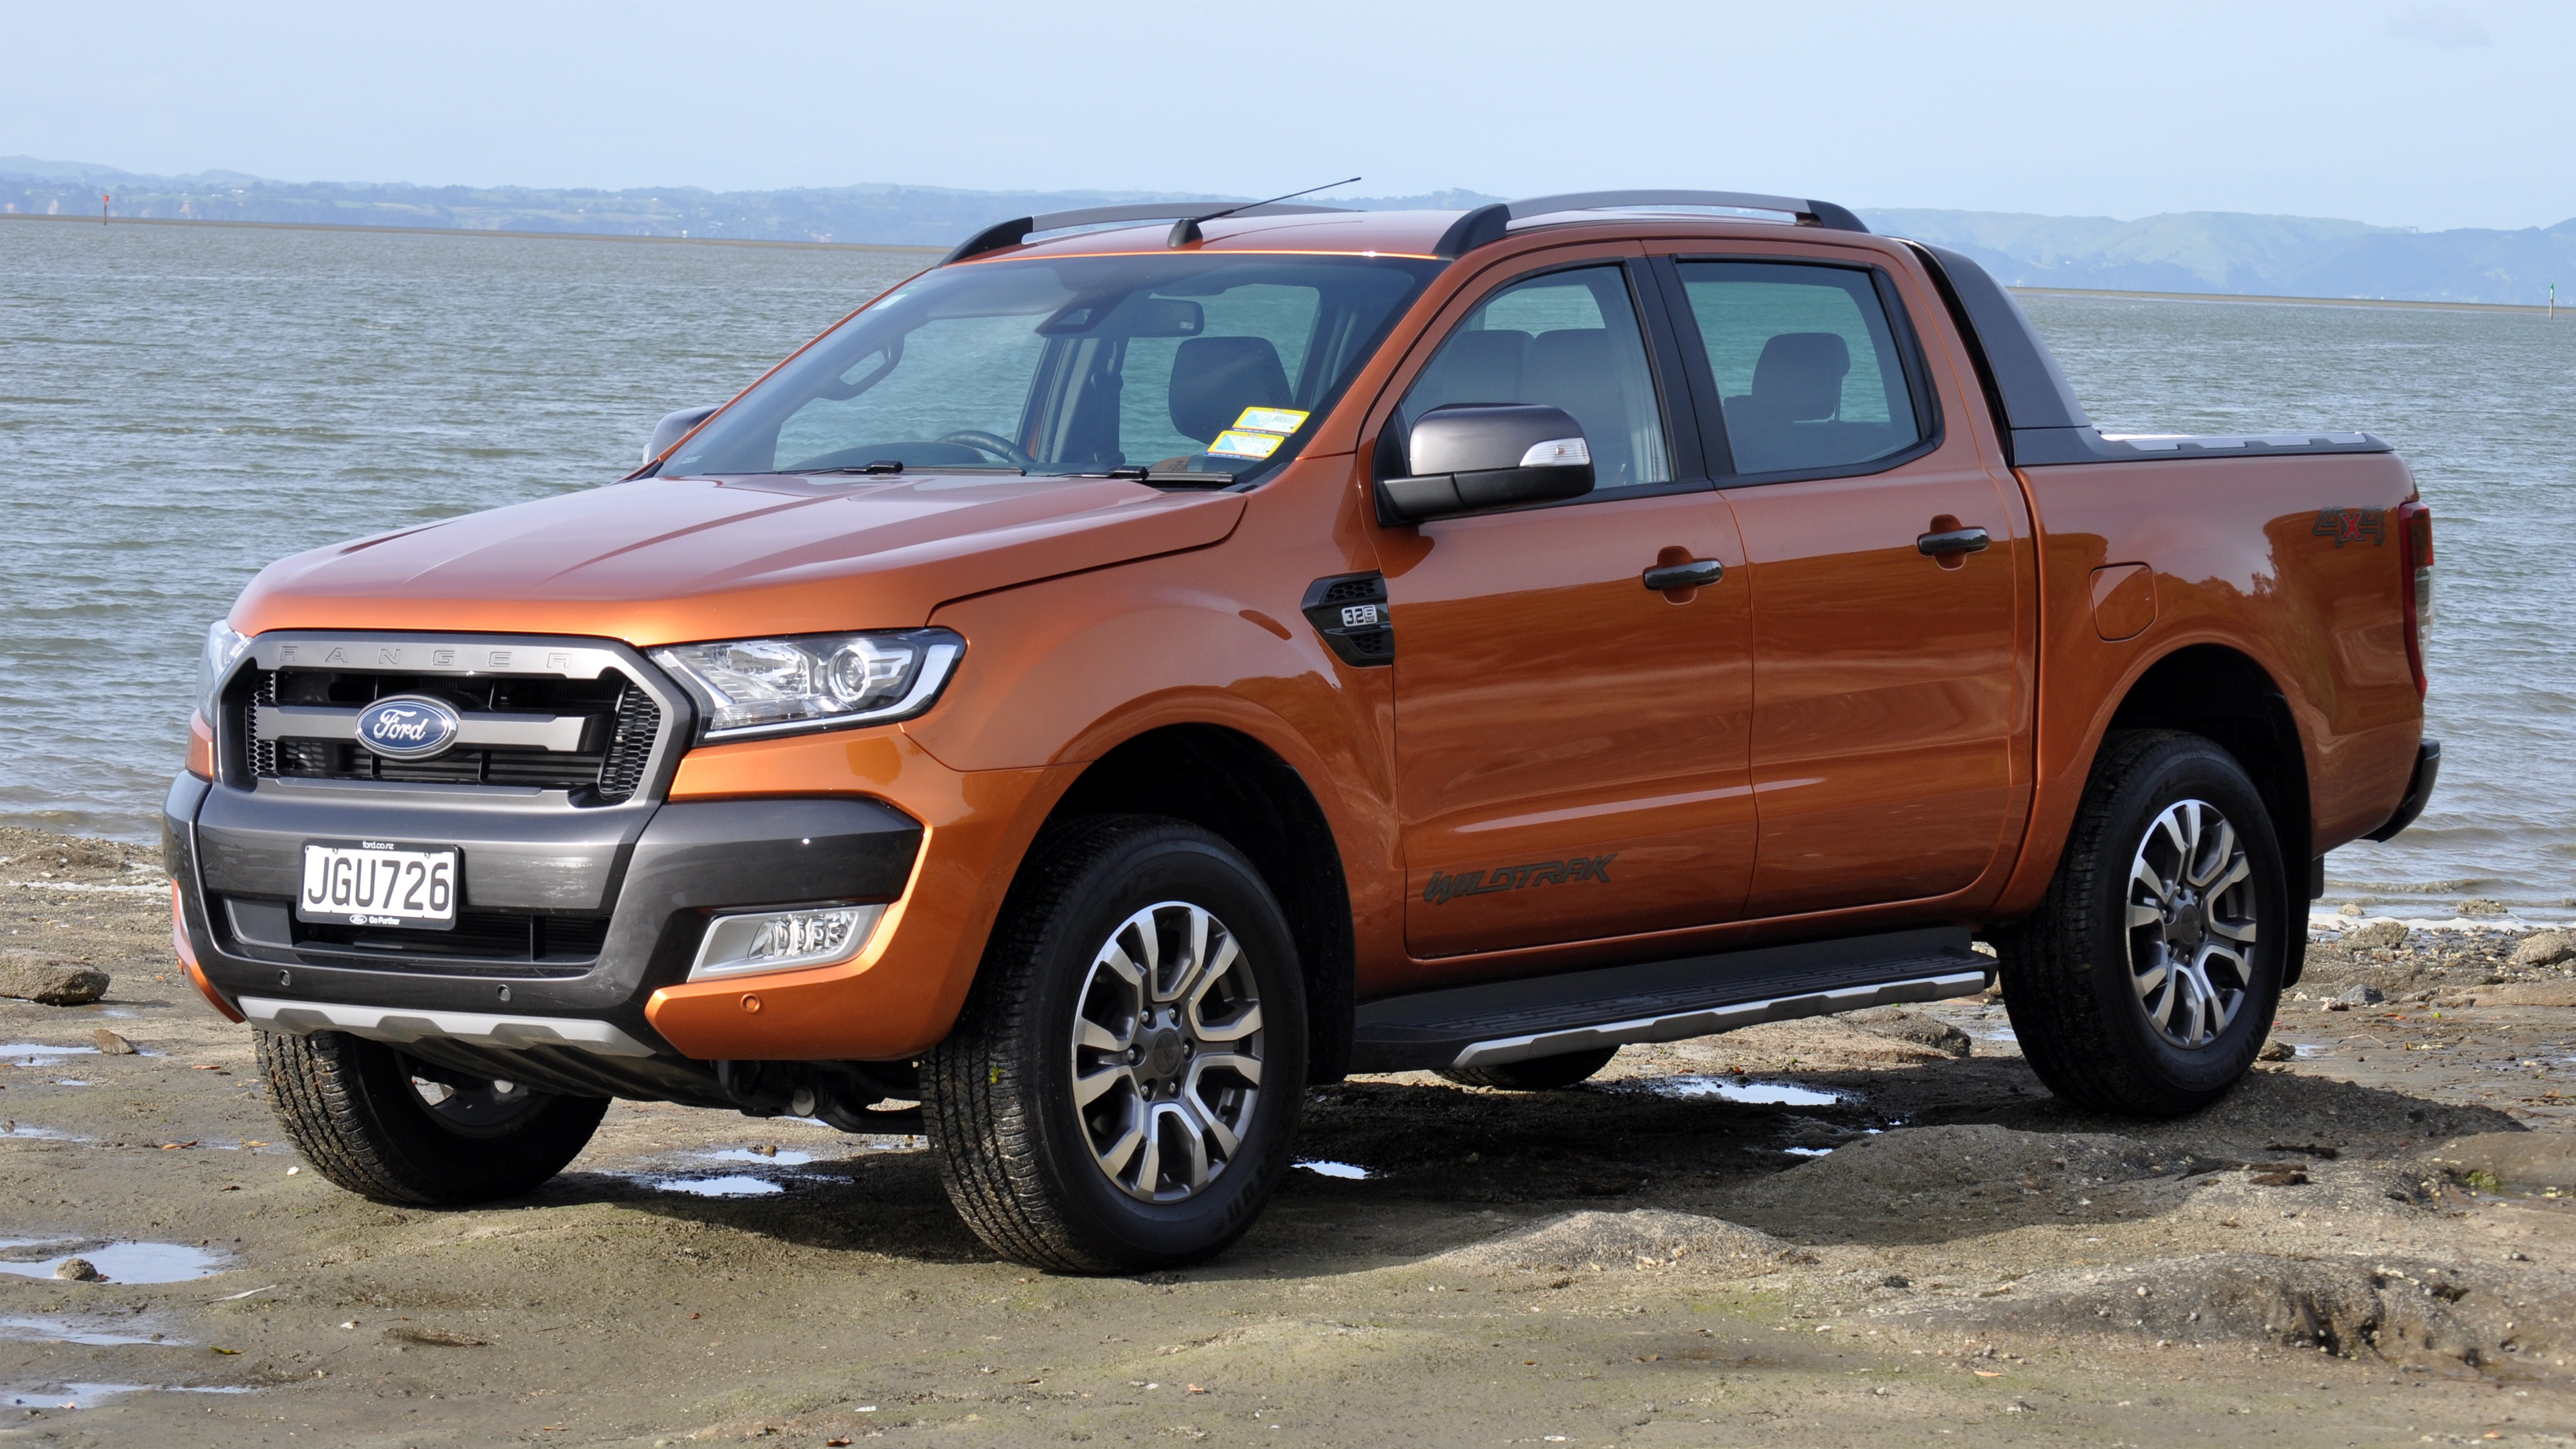 2016 Ford Ranger Wildtrak 4K Wallpaper | HD Car Wallpapers ...